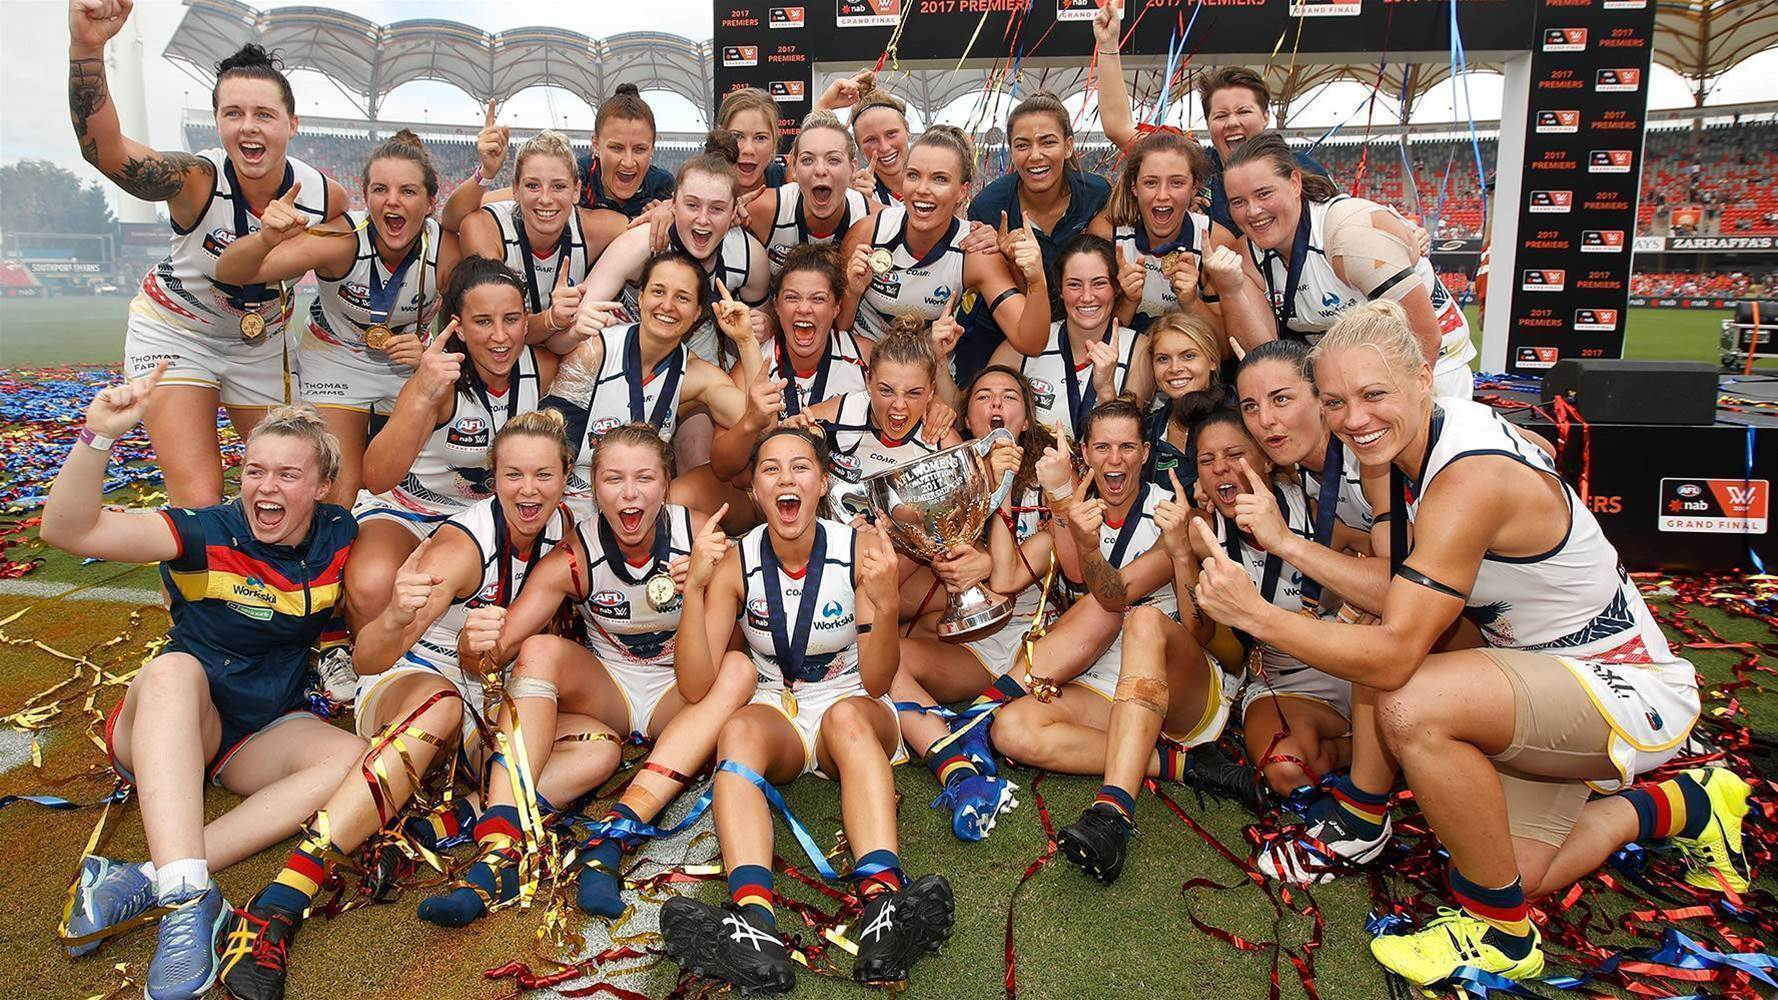 AFLW to expand to 14 clubs